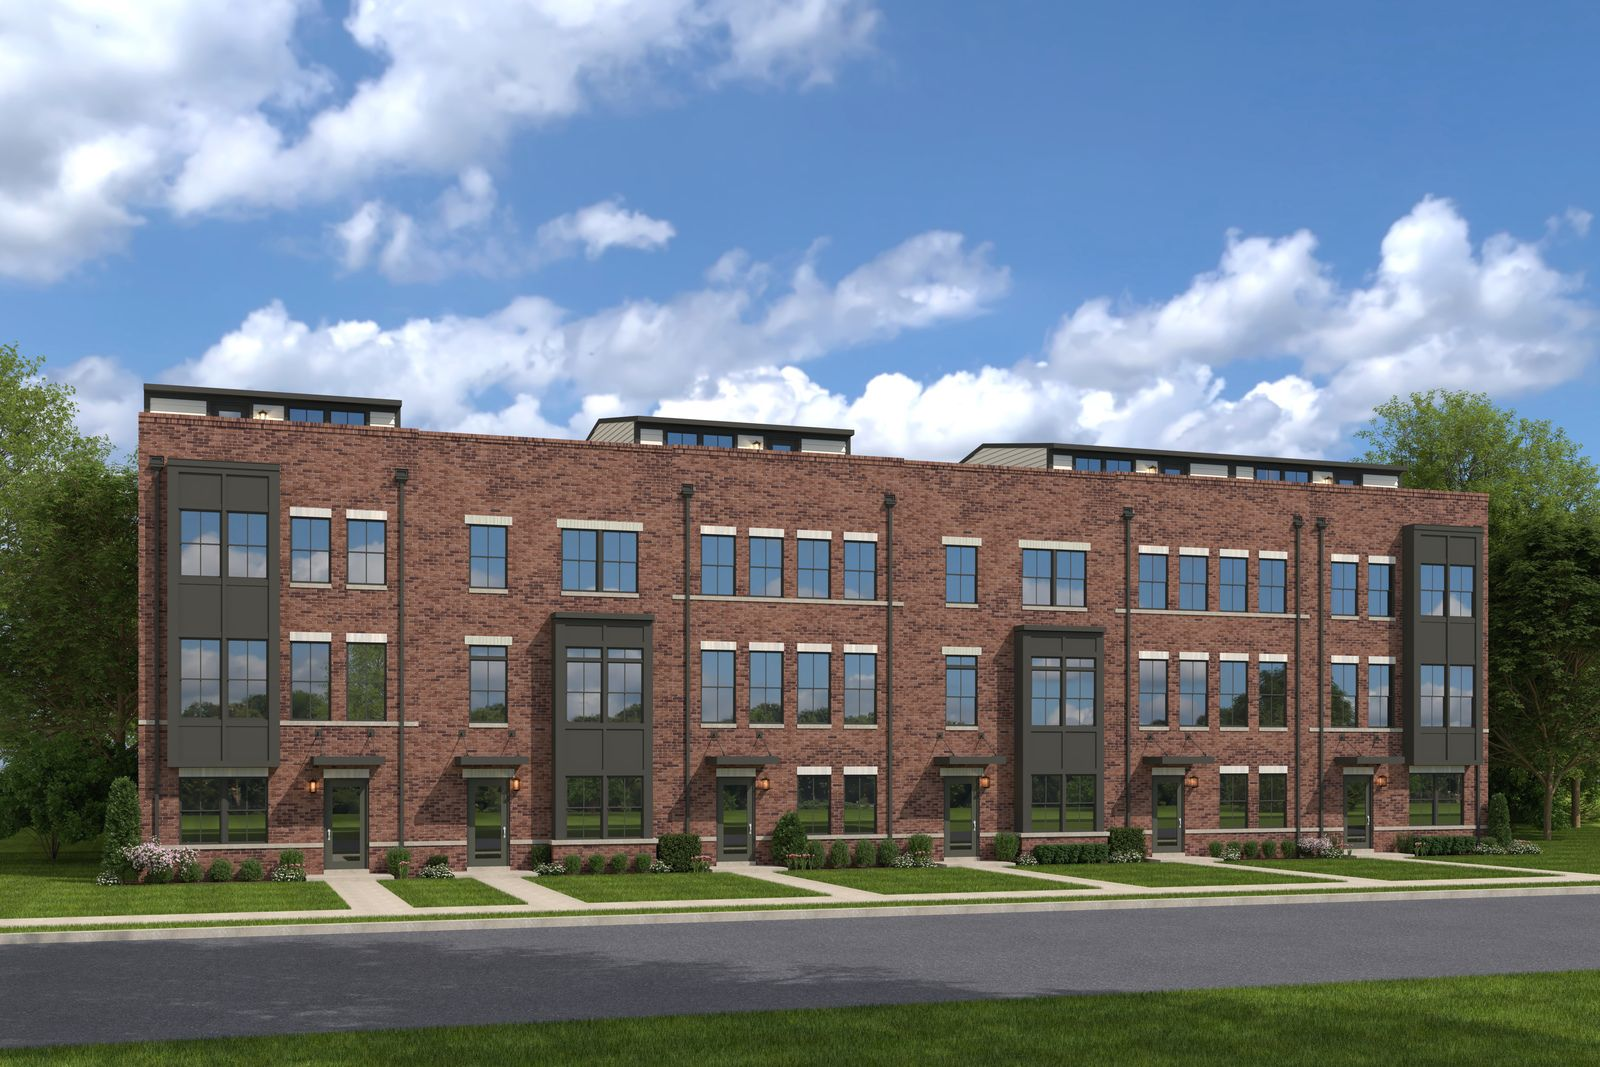 Join the Banner Row VIP List:Own a brand new 2-car garage townhome in Locust Point. Offering luxury floorplans with sweeping views, located just minutes from I-95.Join our VIP list today!